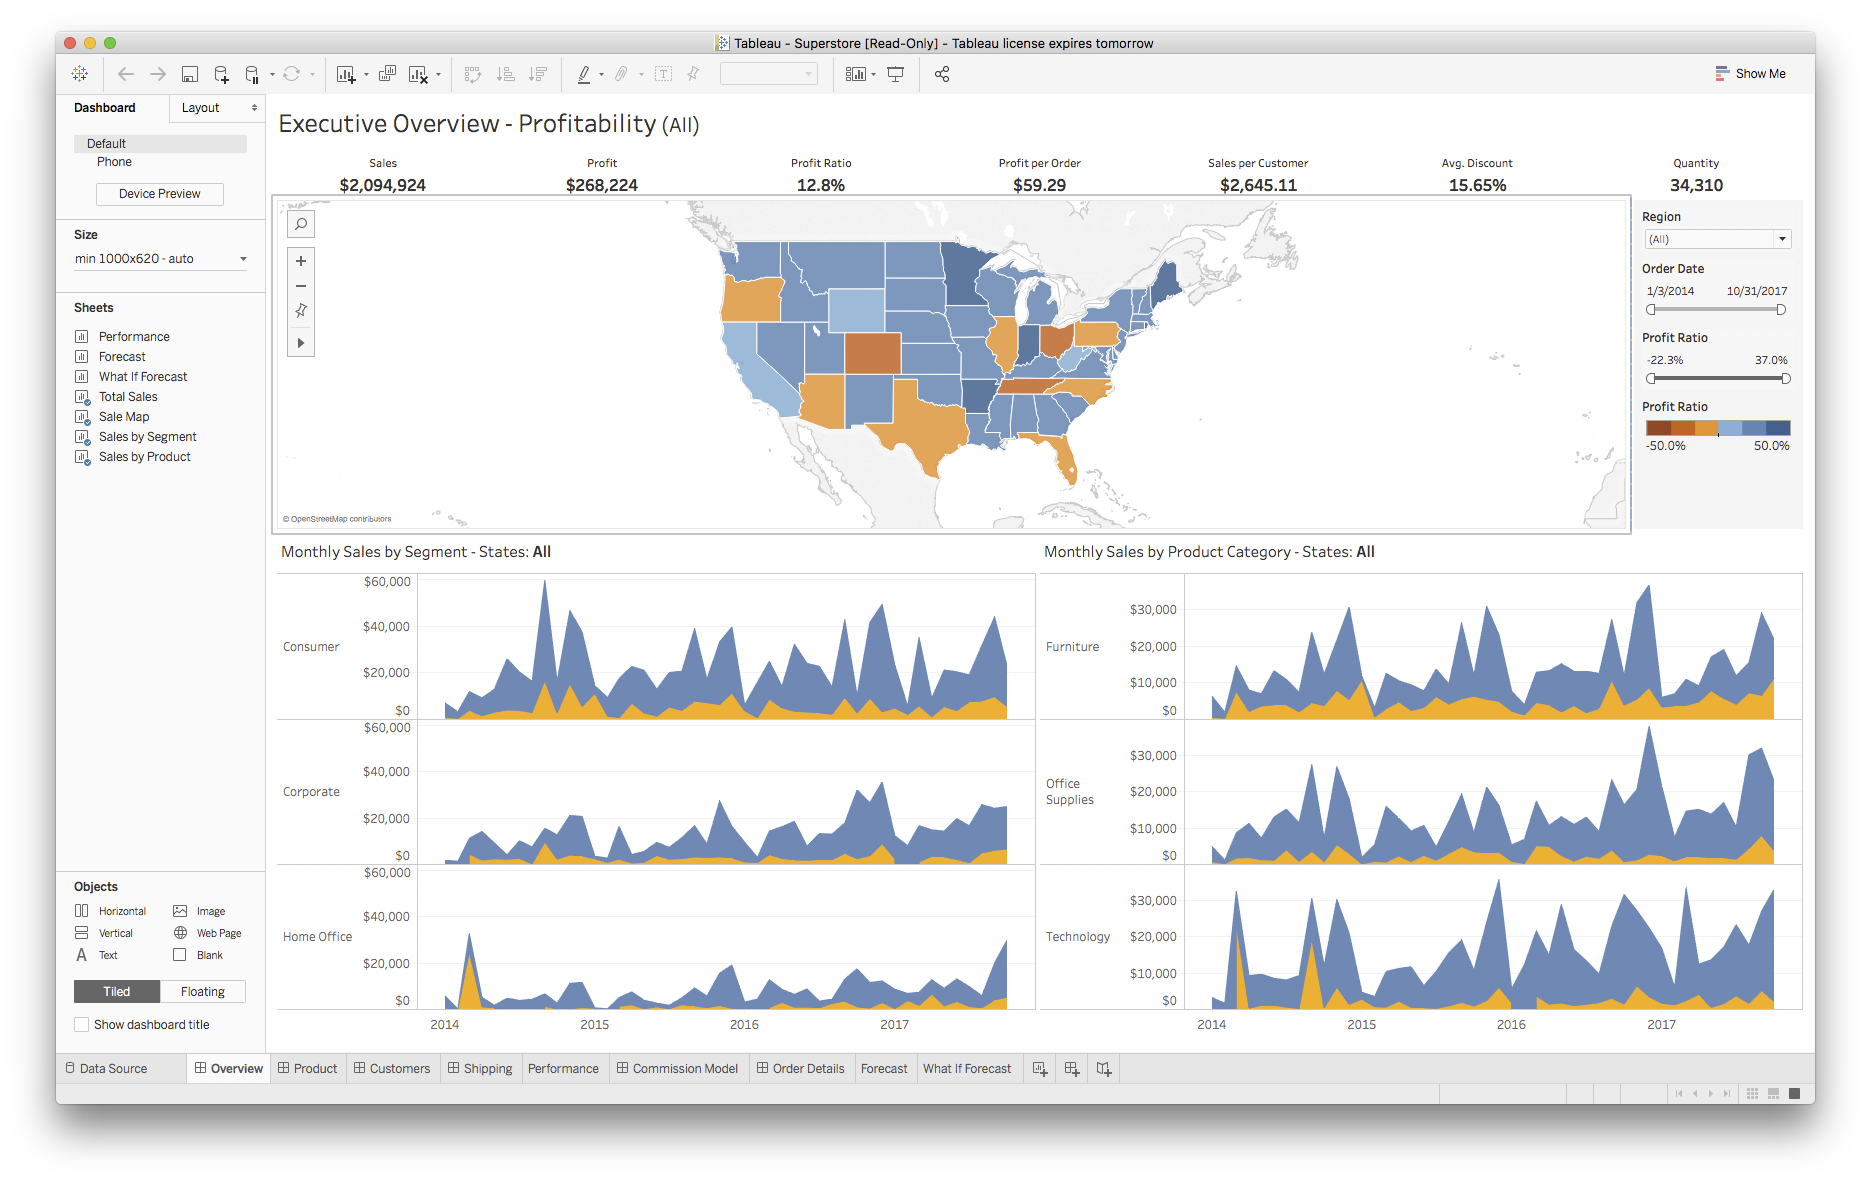 An overly complex Tableau dashboard of sales information for a fictional company, featuring maps, time series, and captions.